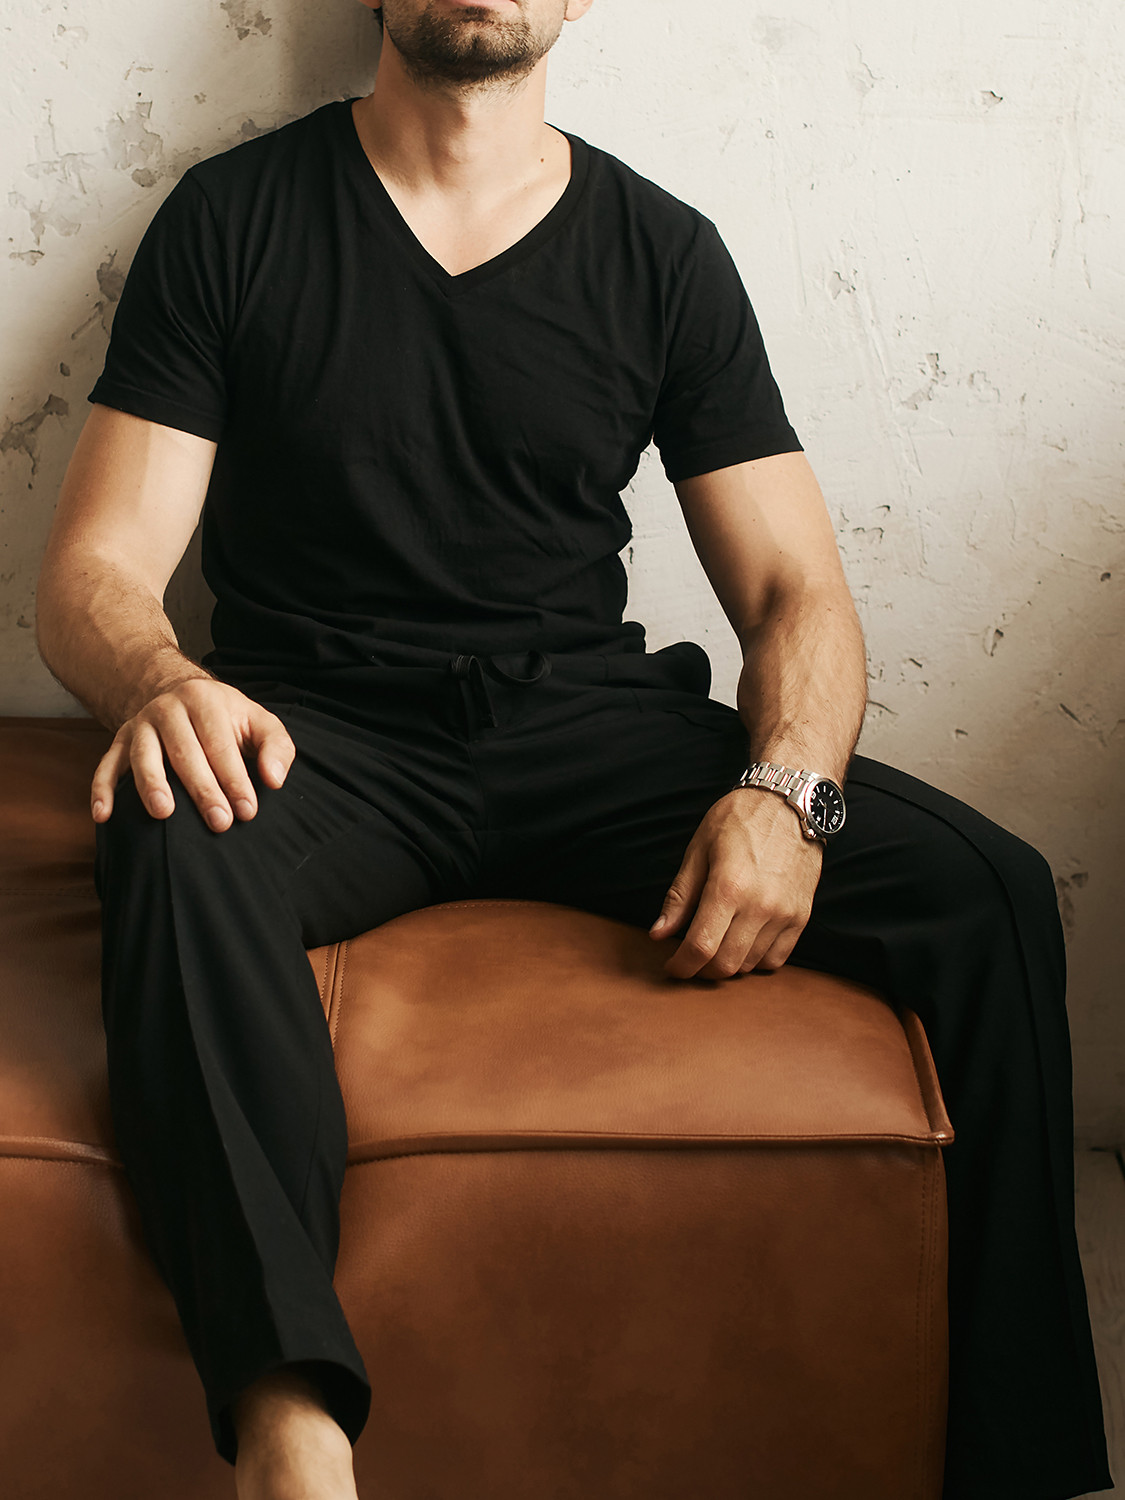 Men's outfit idea for 2021 with black plain v-neck t-shirt, black chinos, metallic chain-link watch, black sandals. Suitable for spring and summer.